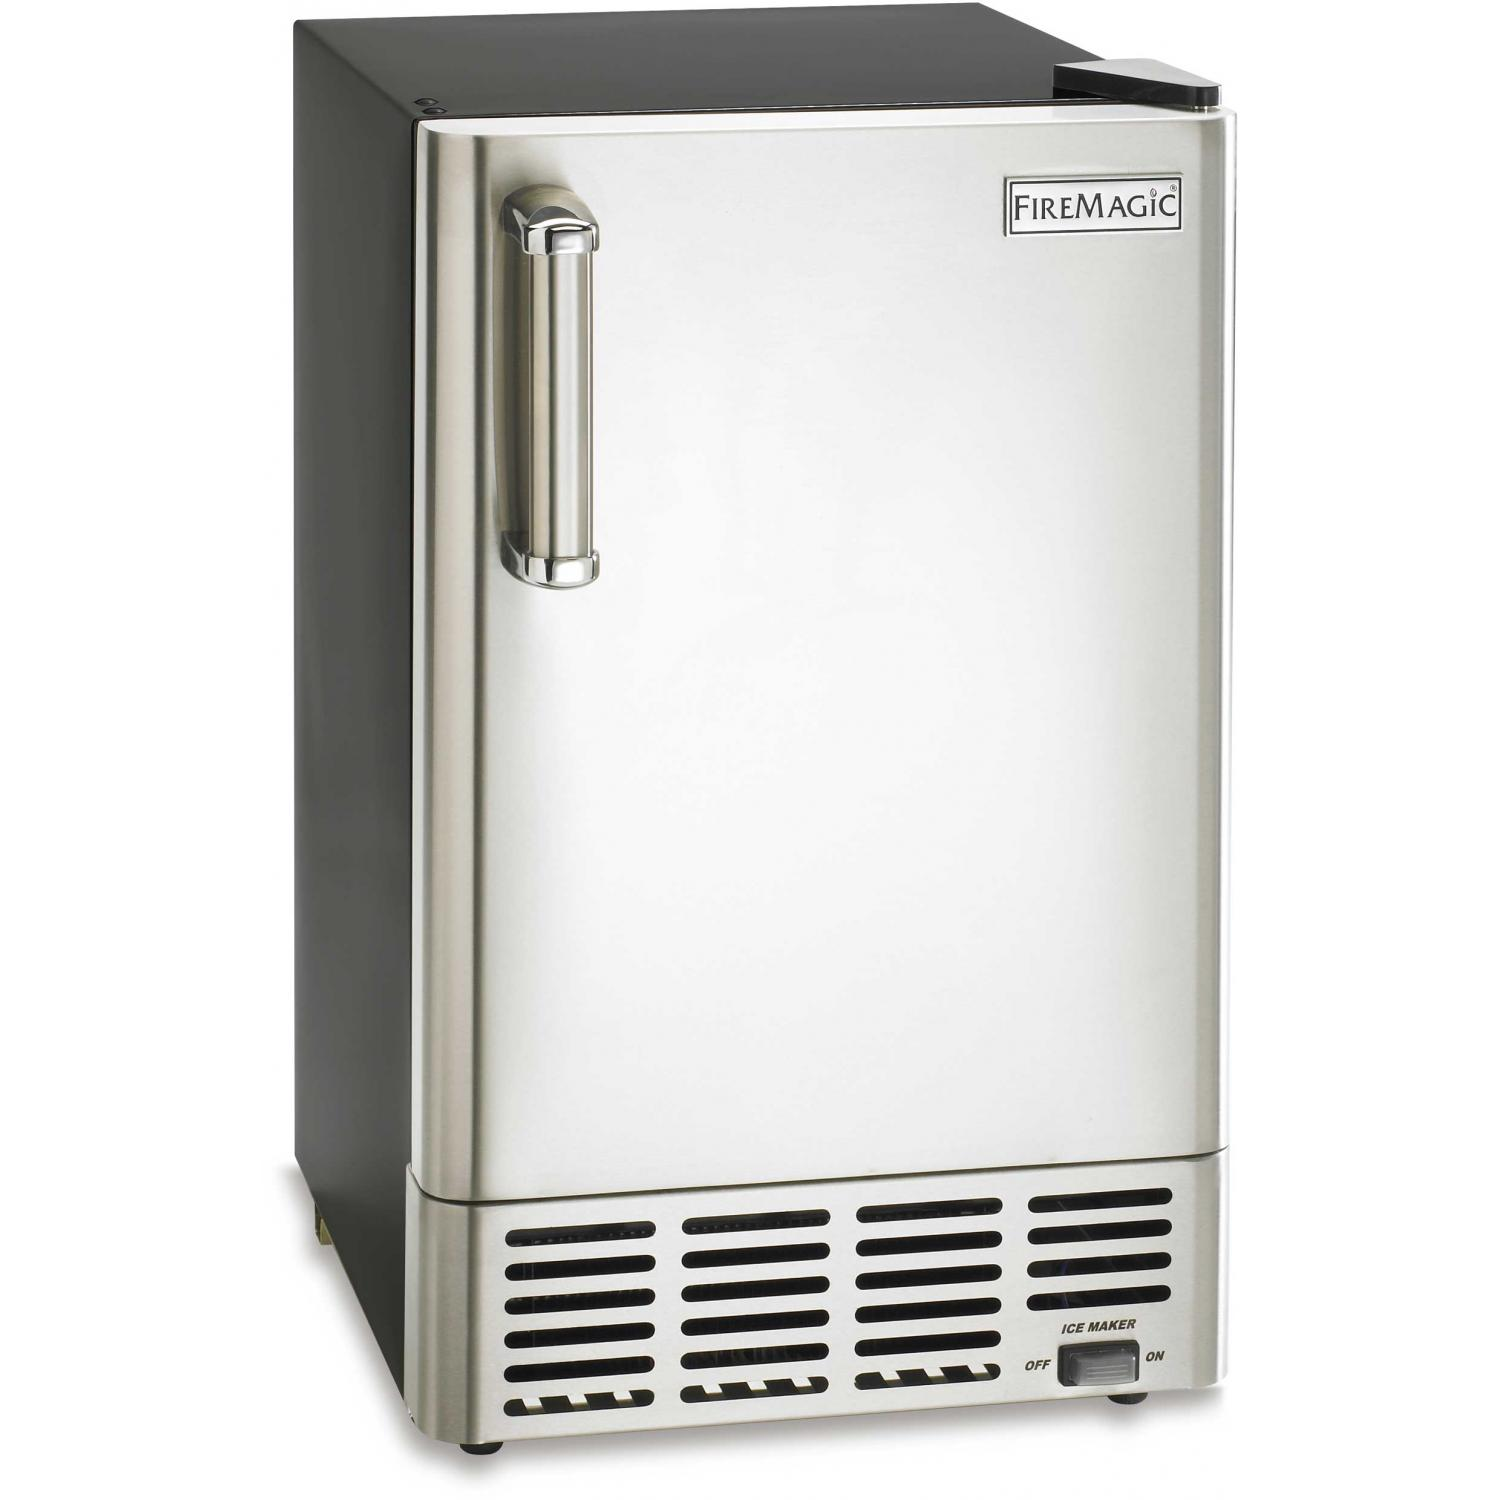 Fire Magic 3592 Outdoor Ice Maker - Stainless Steel Door / Black Cabinet